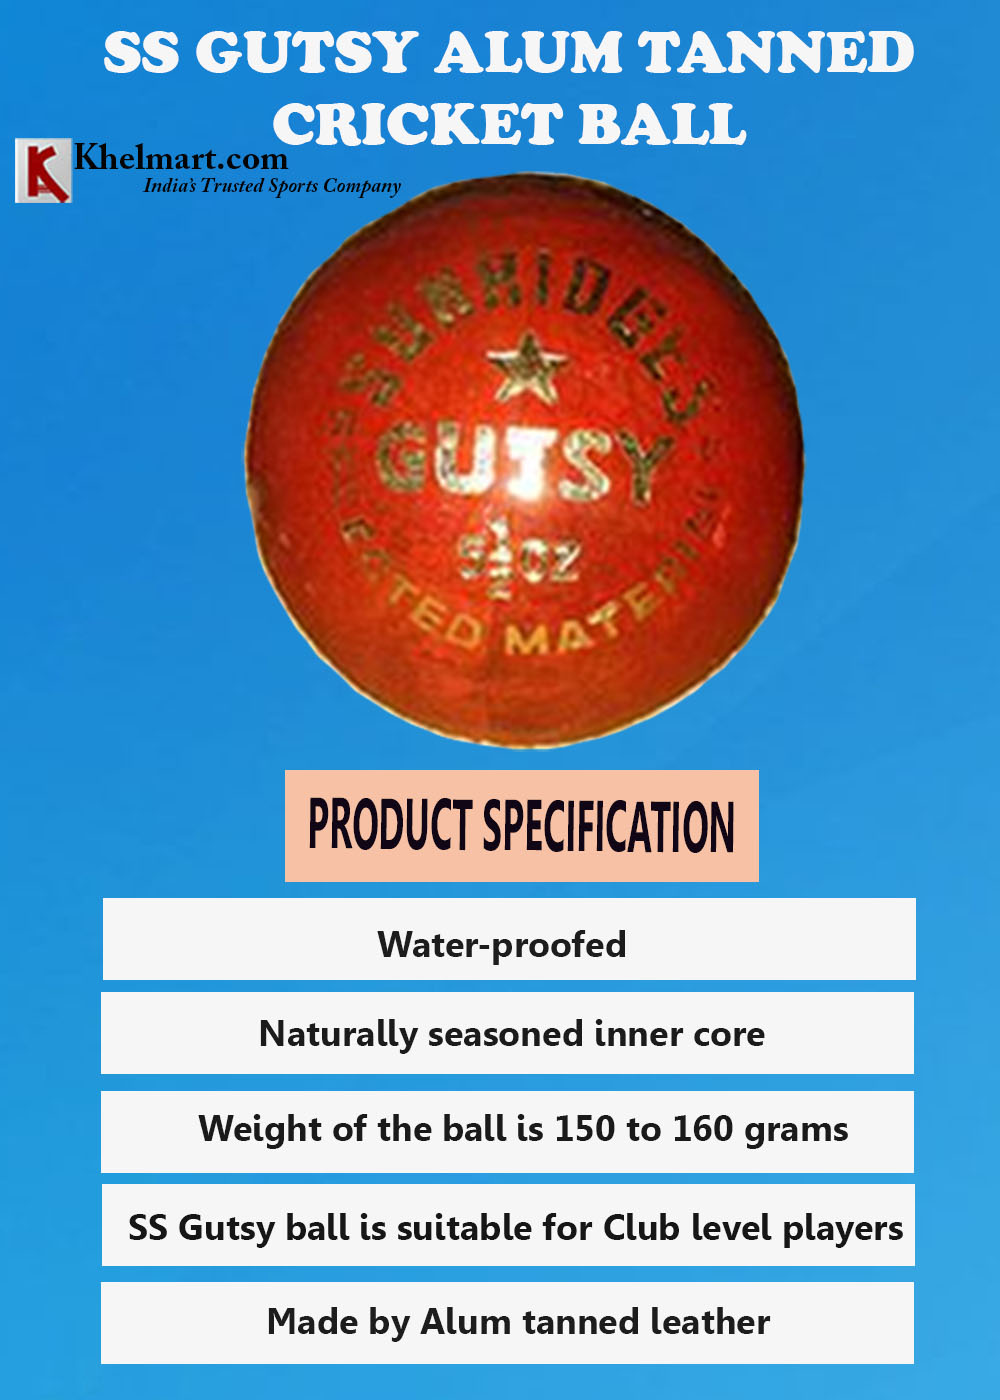 SS Gutsy Alum Tanned Cricket Ball